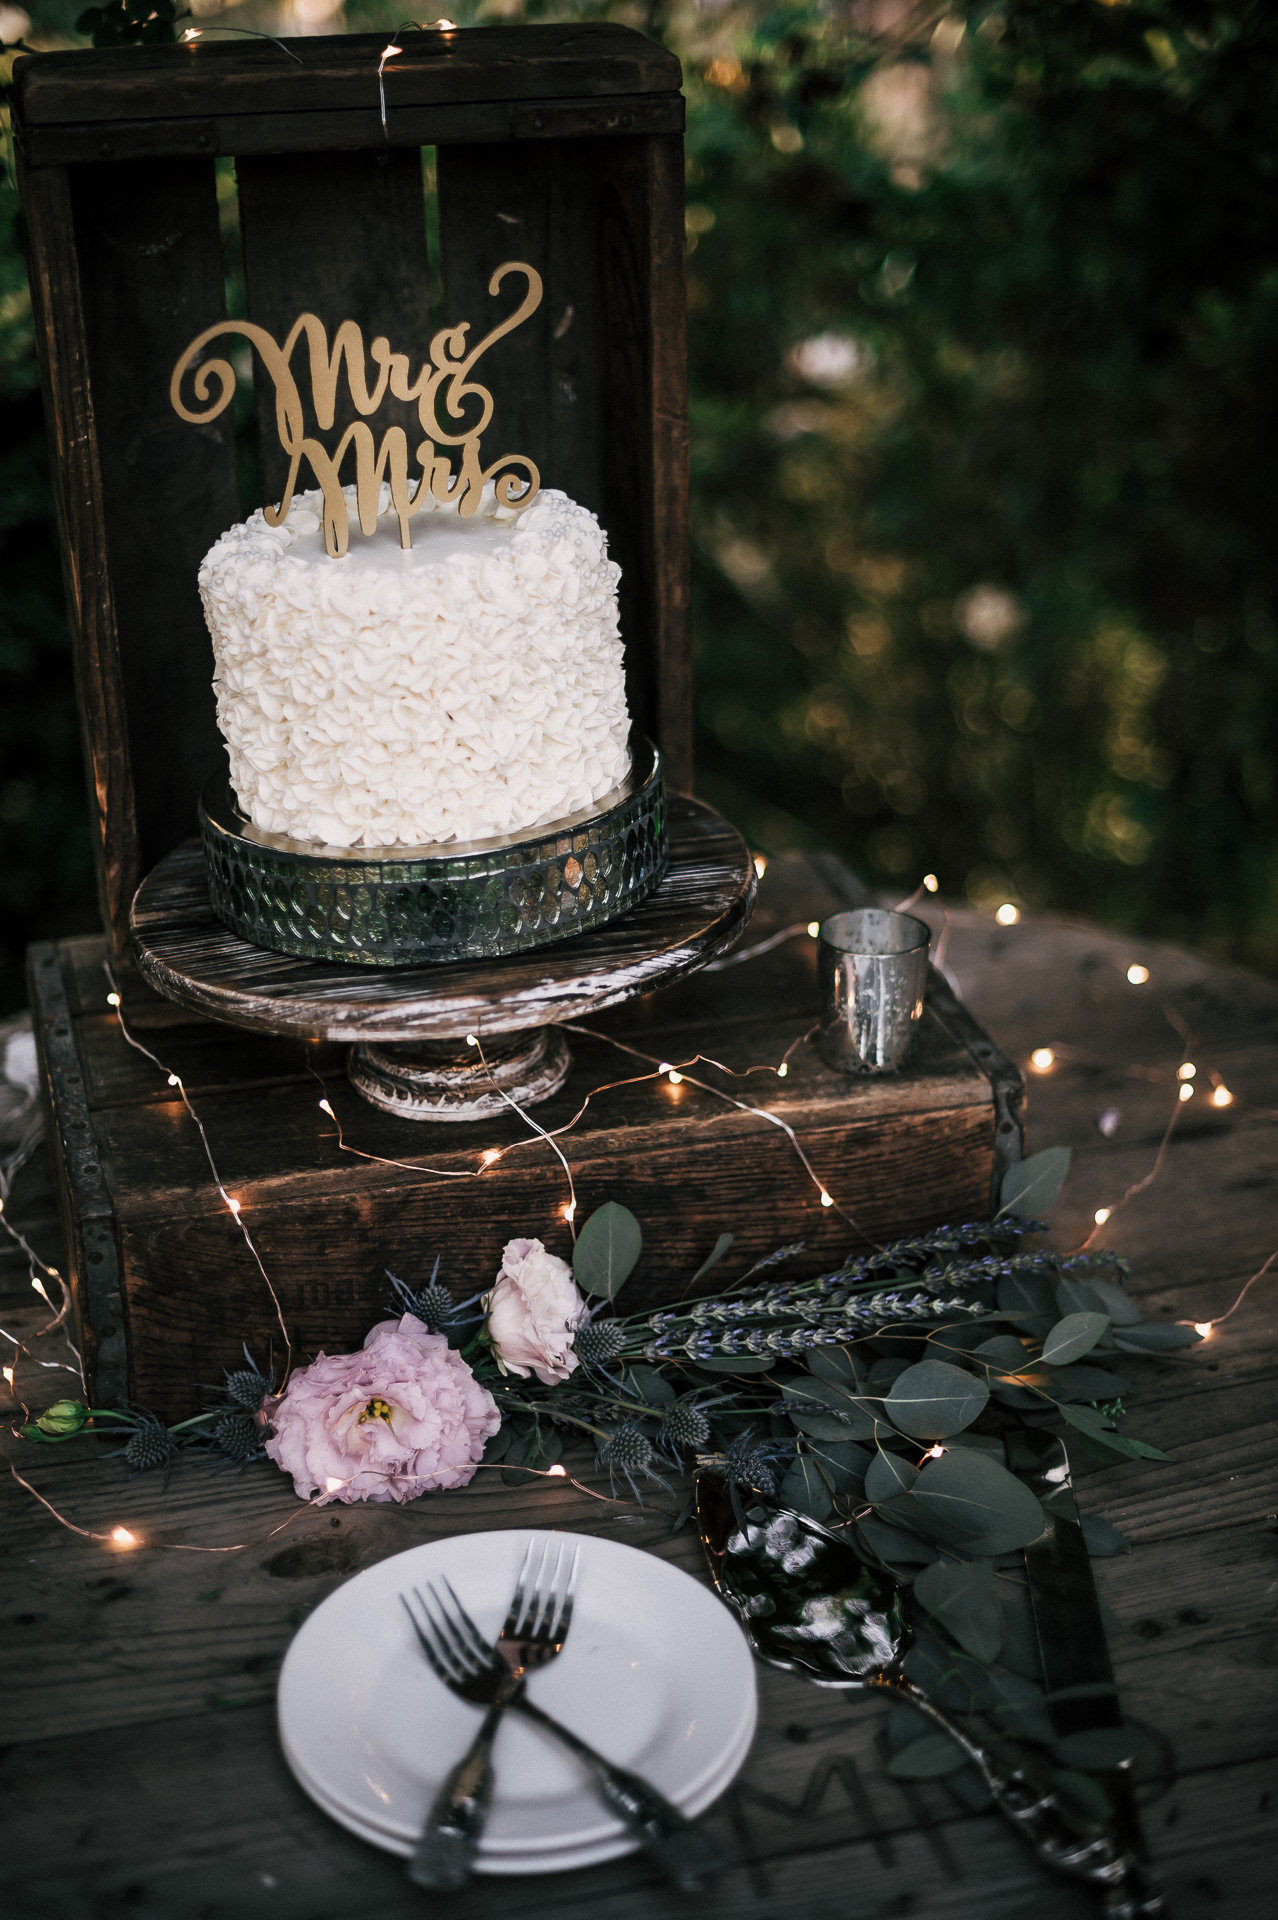 Simple but elegant wedding cake for your country wedding at Quail Haven Farm.